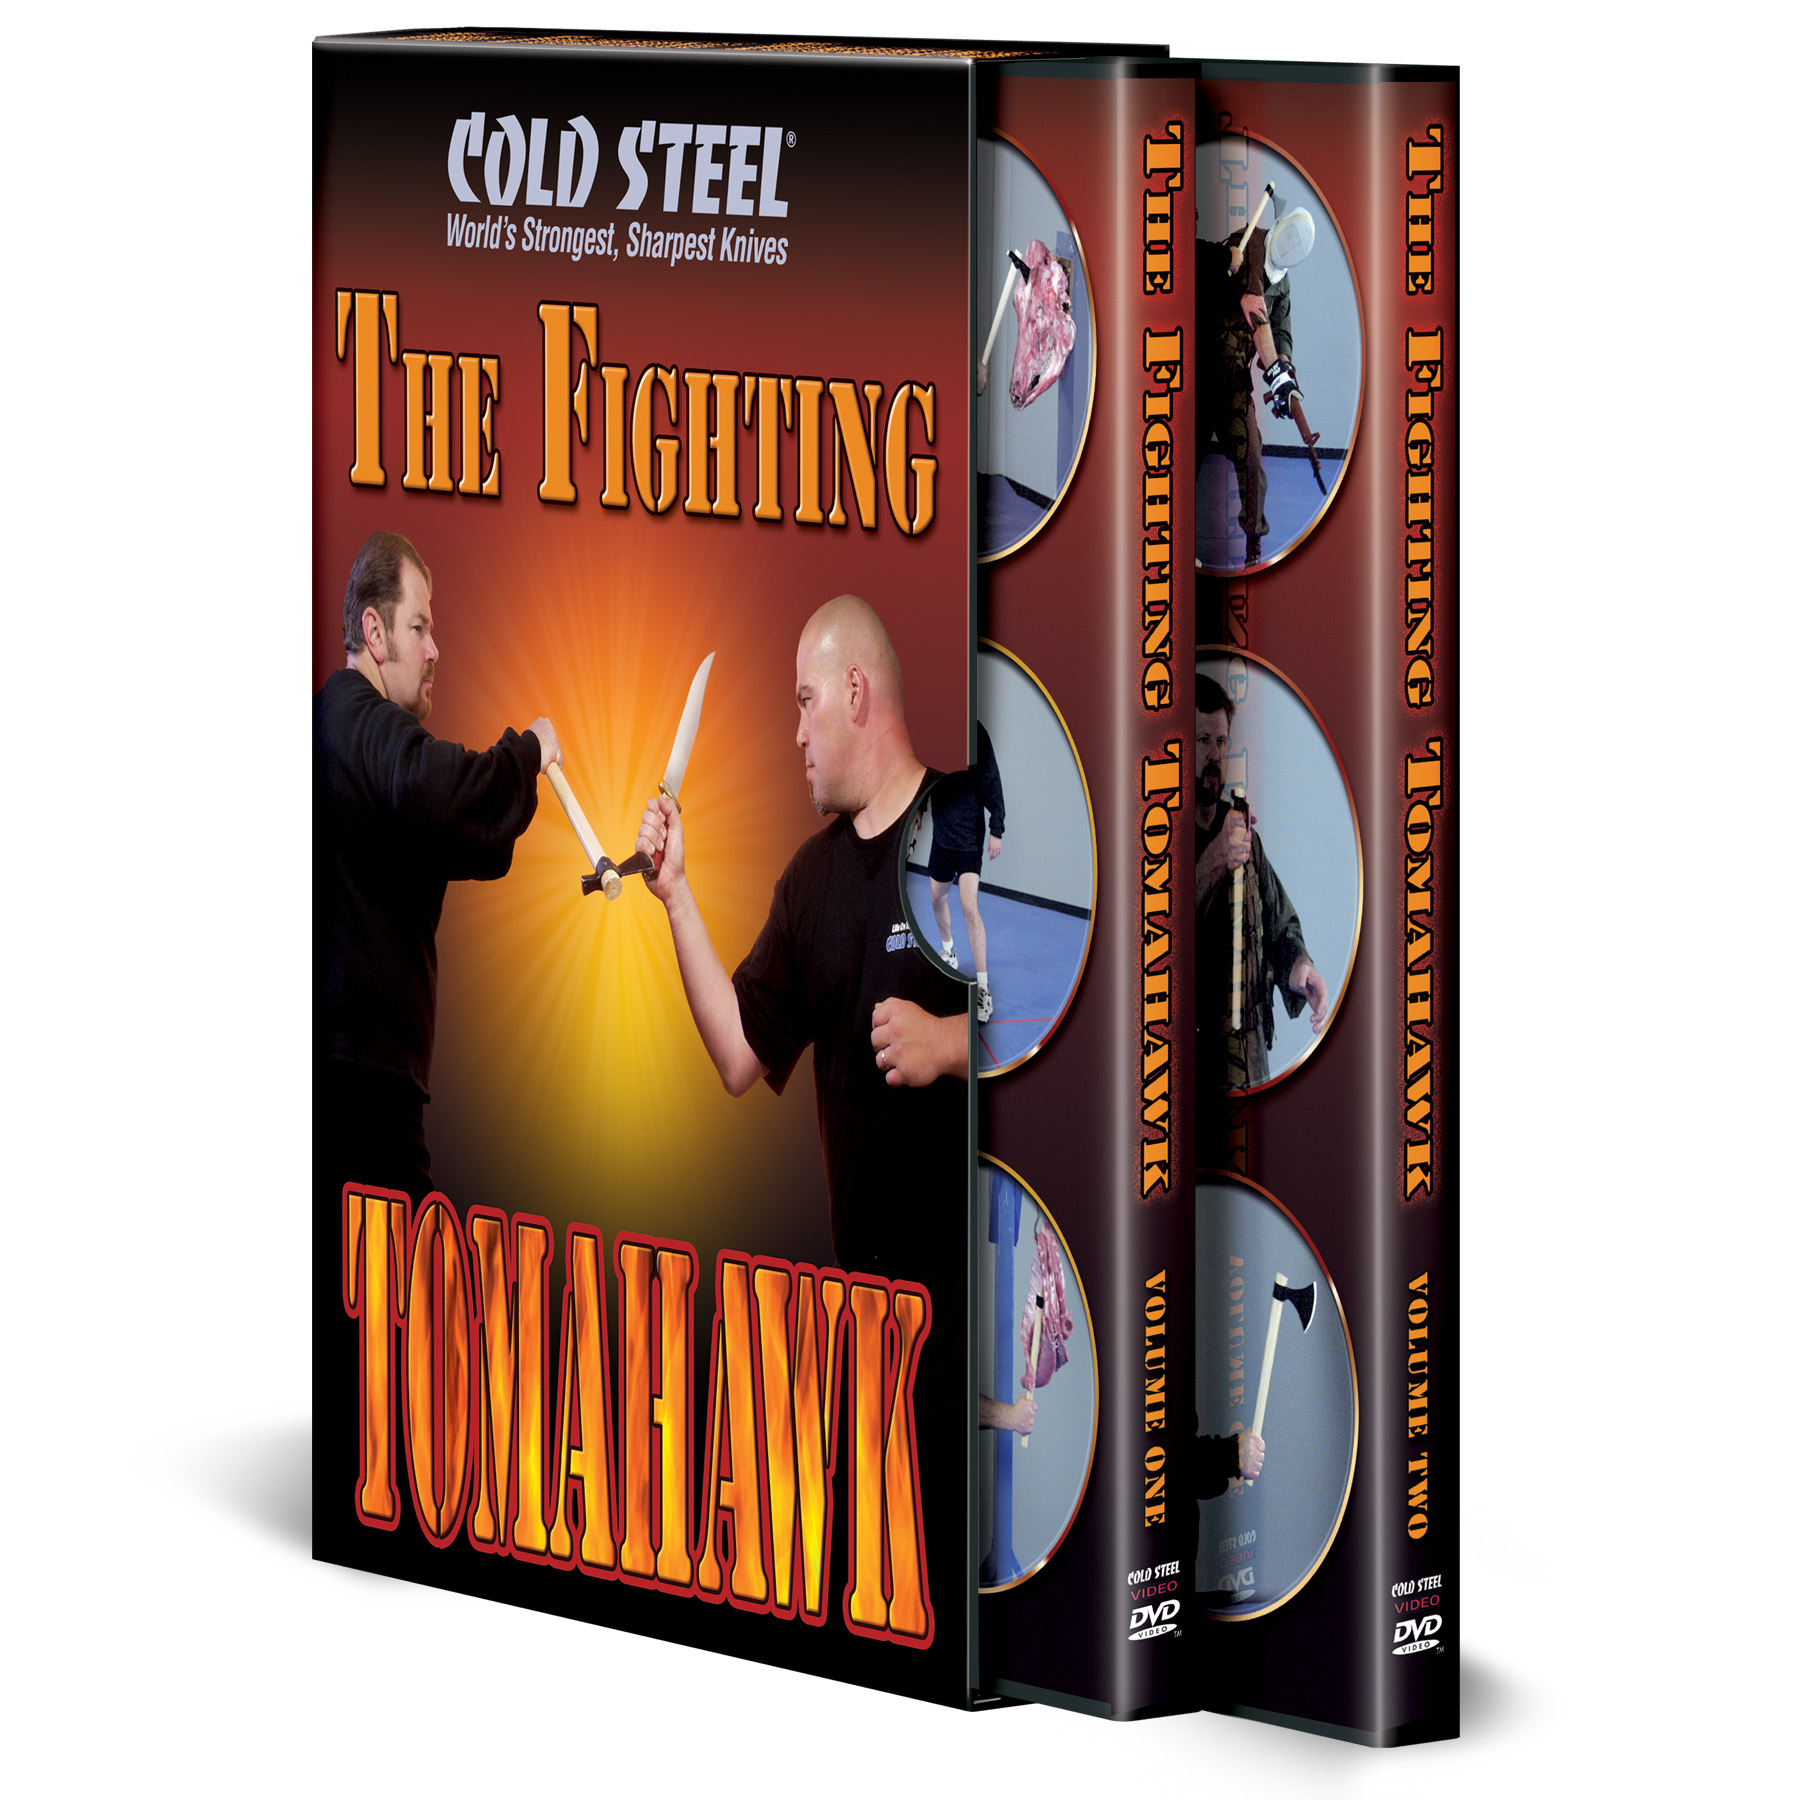 VDFT - COLD STEEL The Fighting Tomahawk DVD